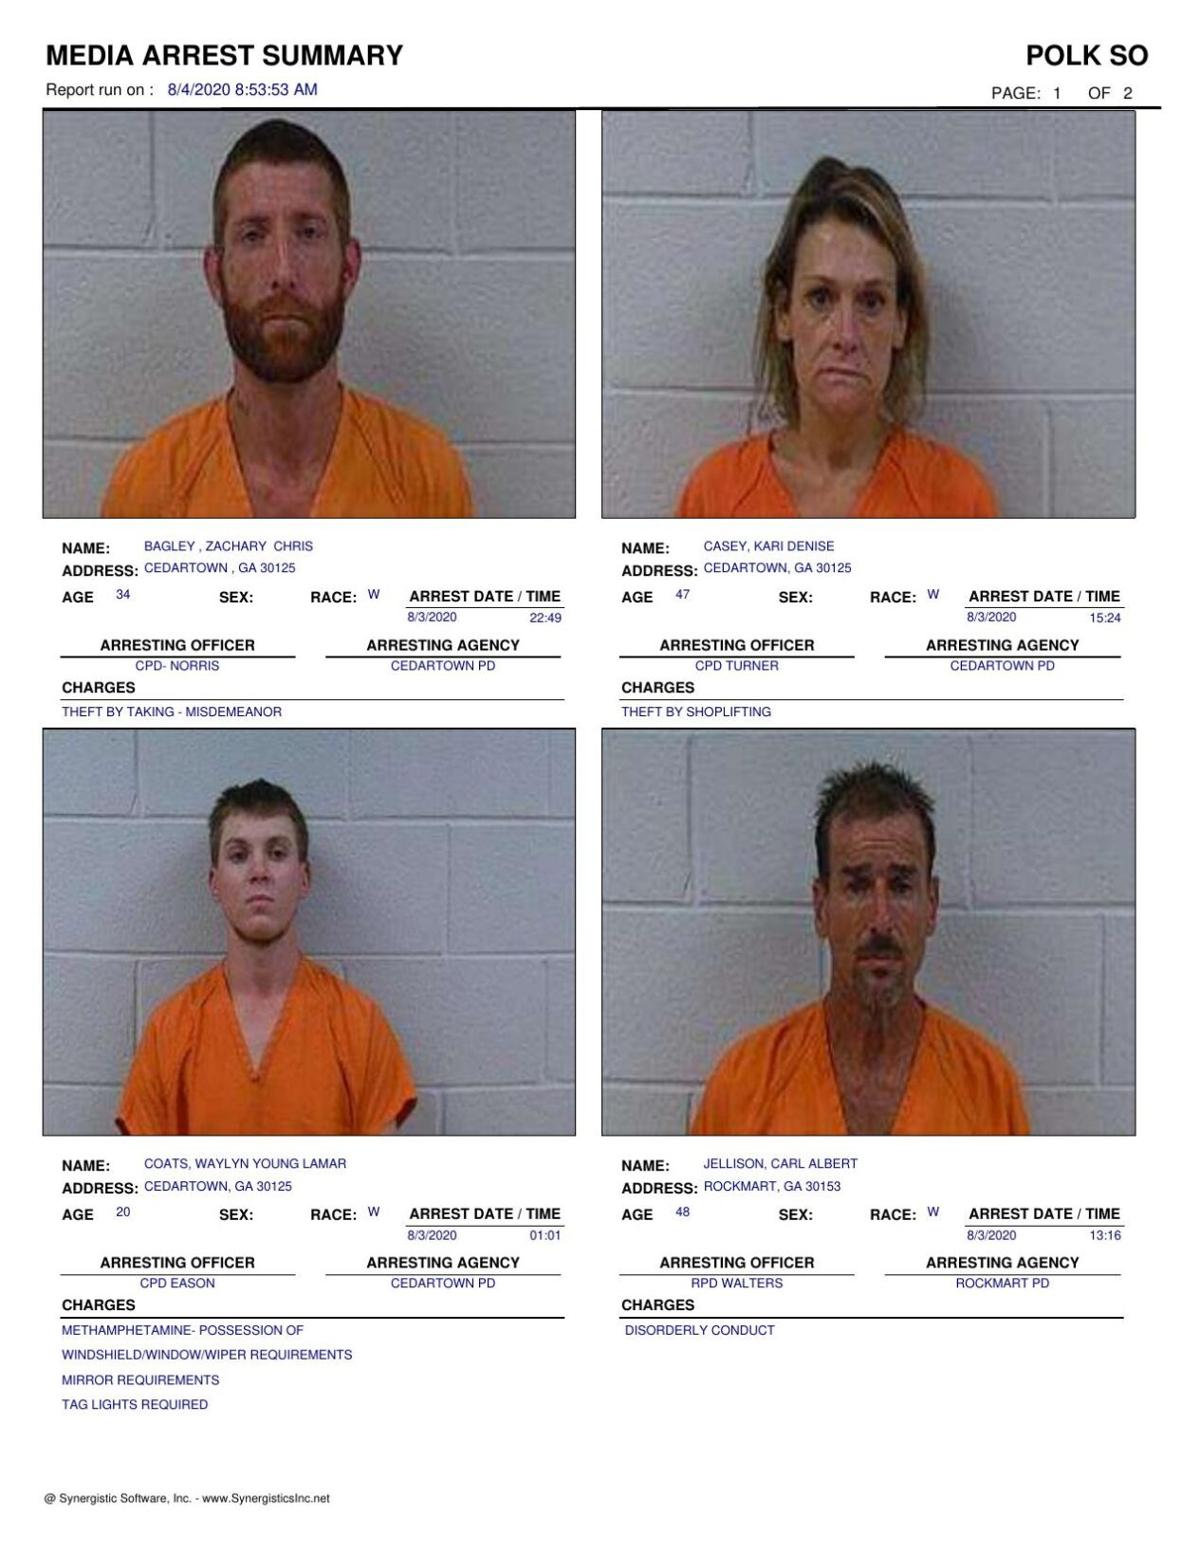 Polk County Jail Report for Tuesday, Aug. 4